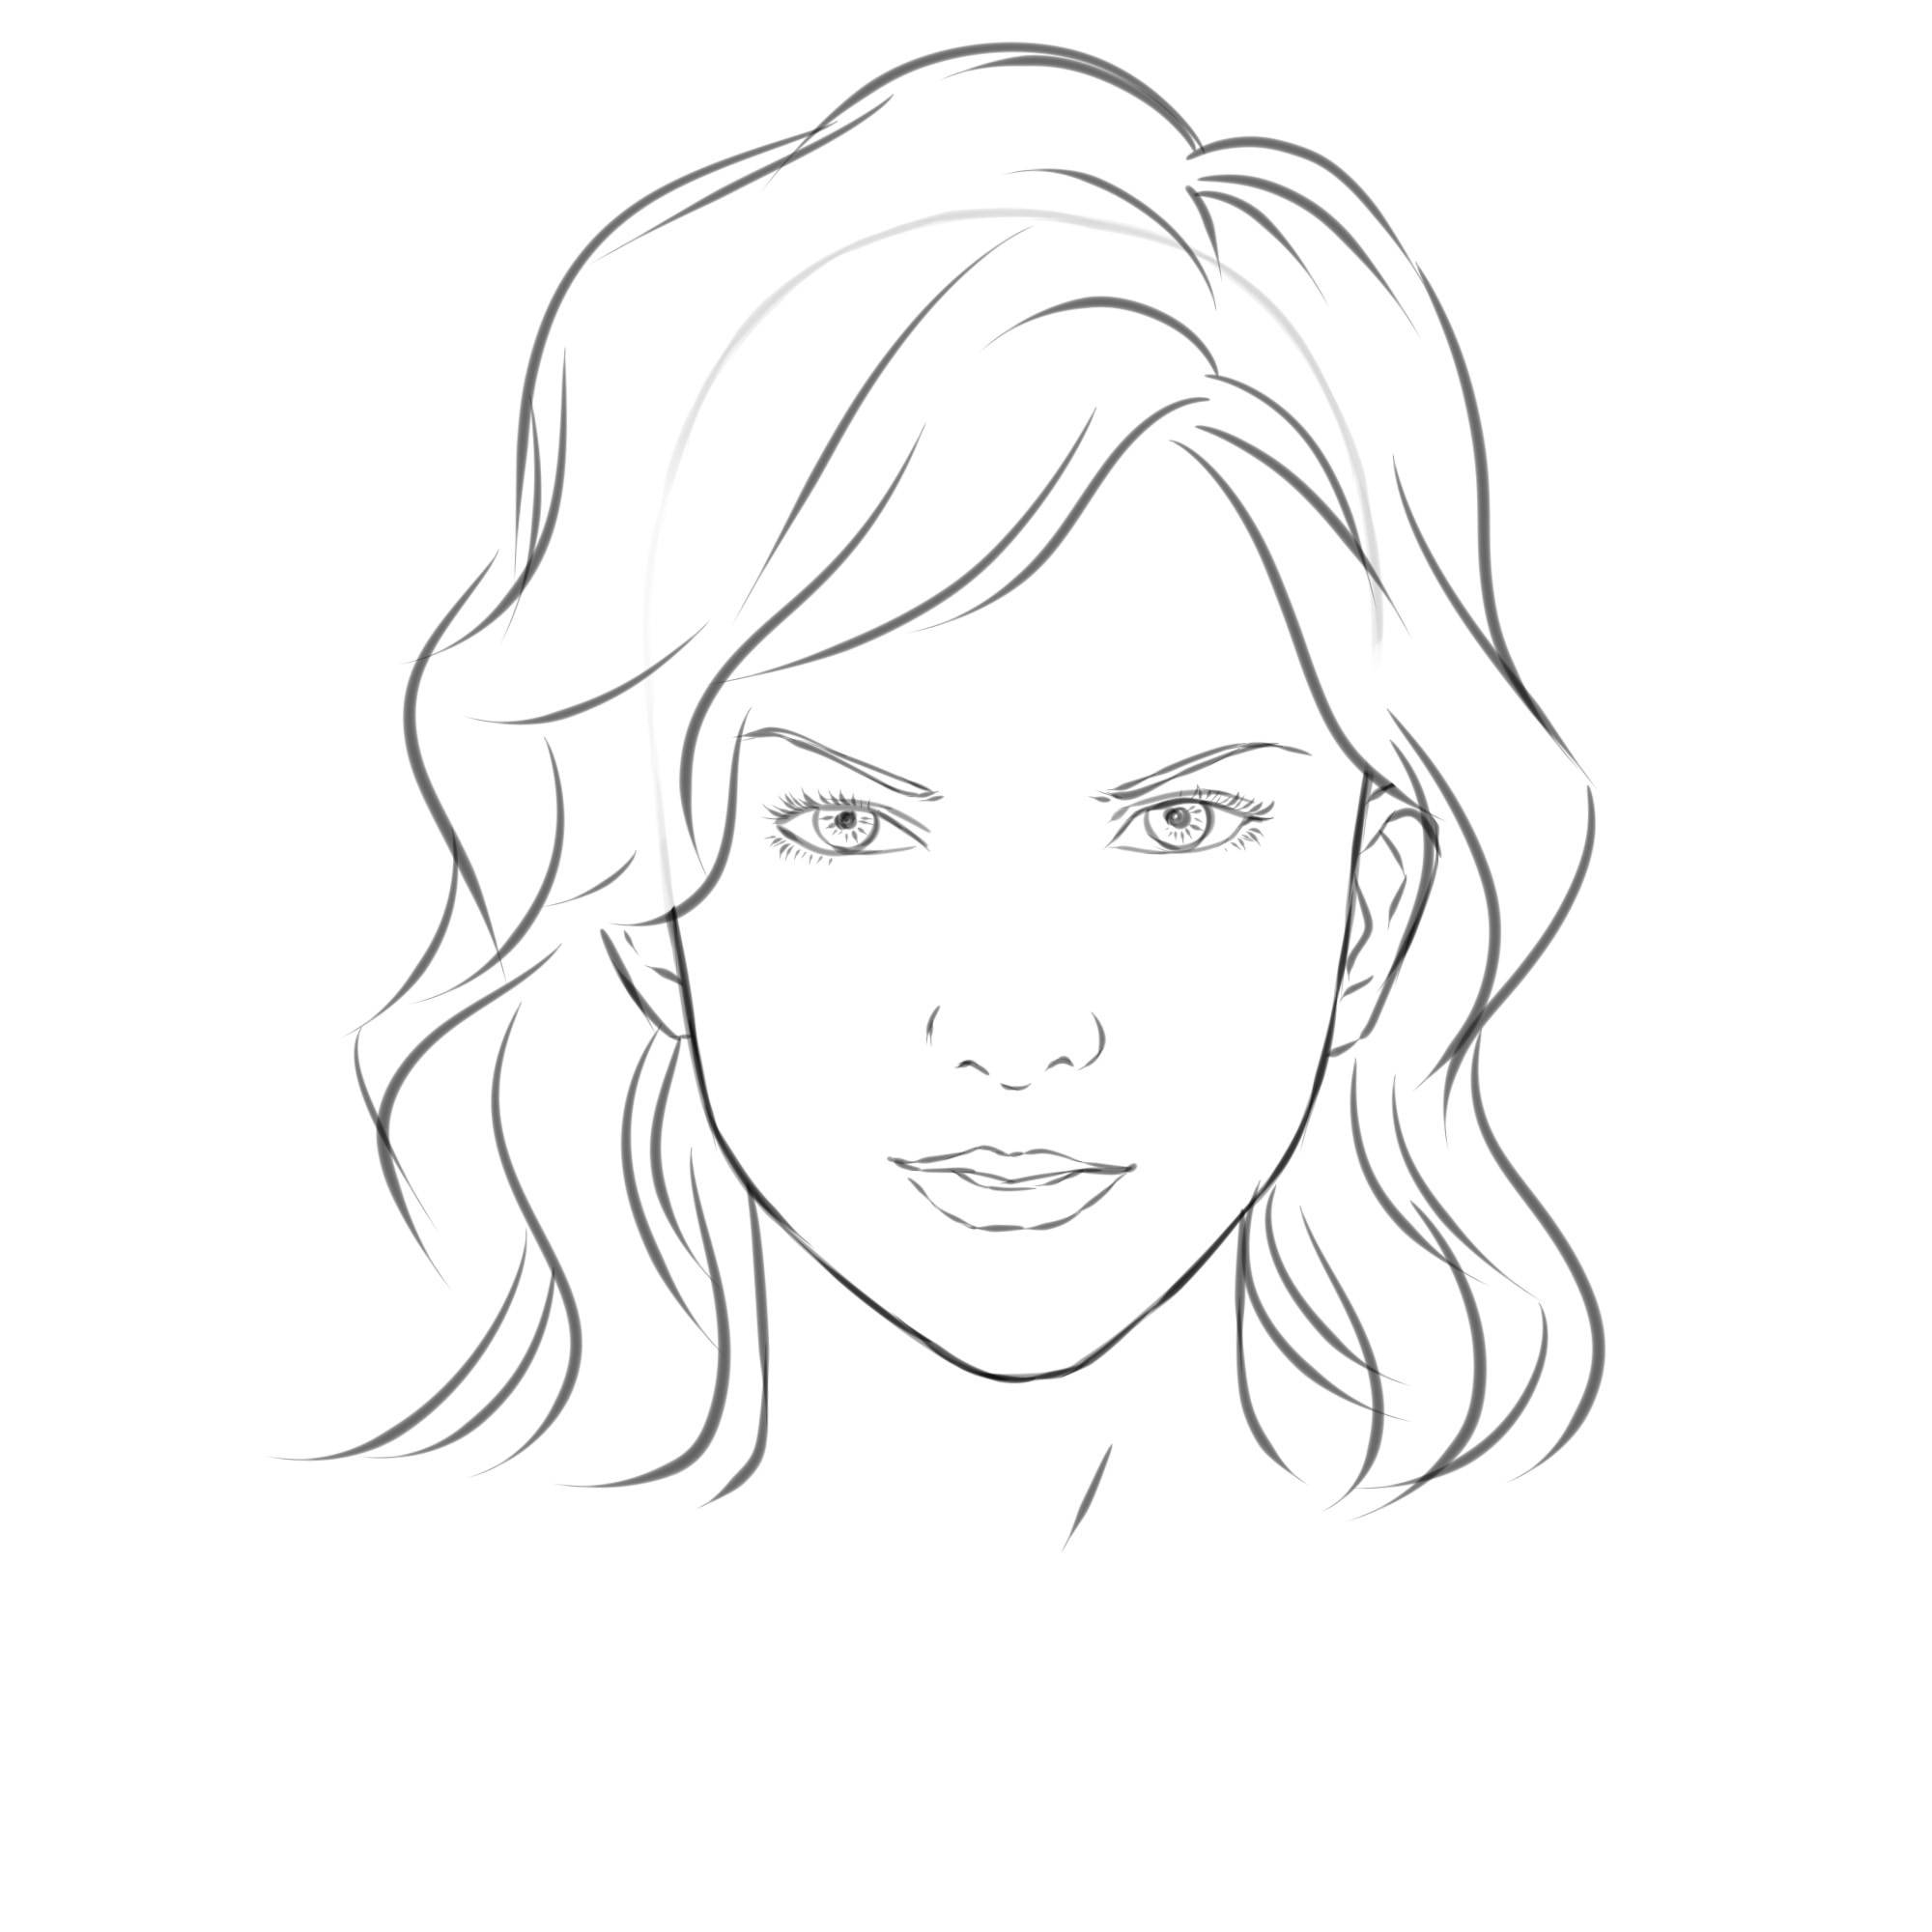 2000x2000 Simple Sketch Of A Girl Face How To Draw A Beautiful Girl Face